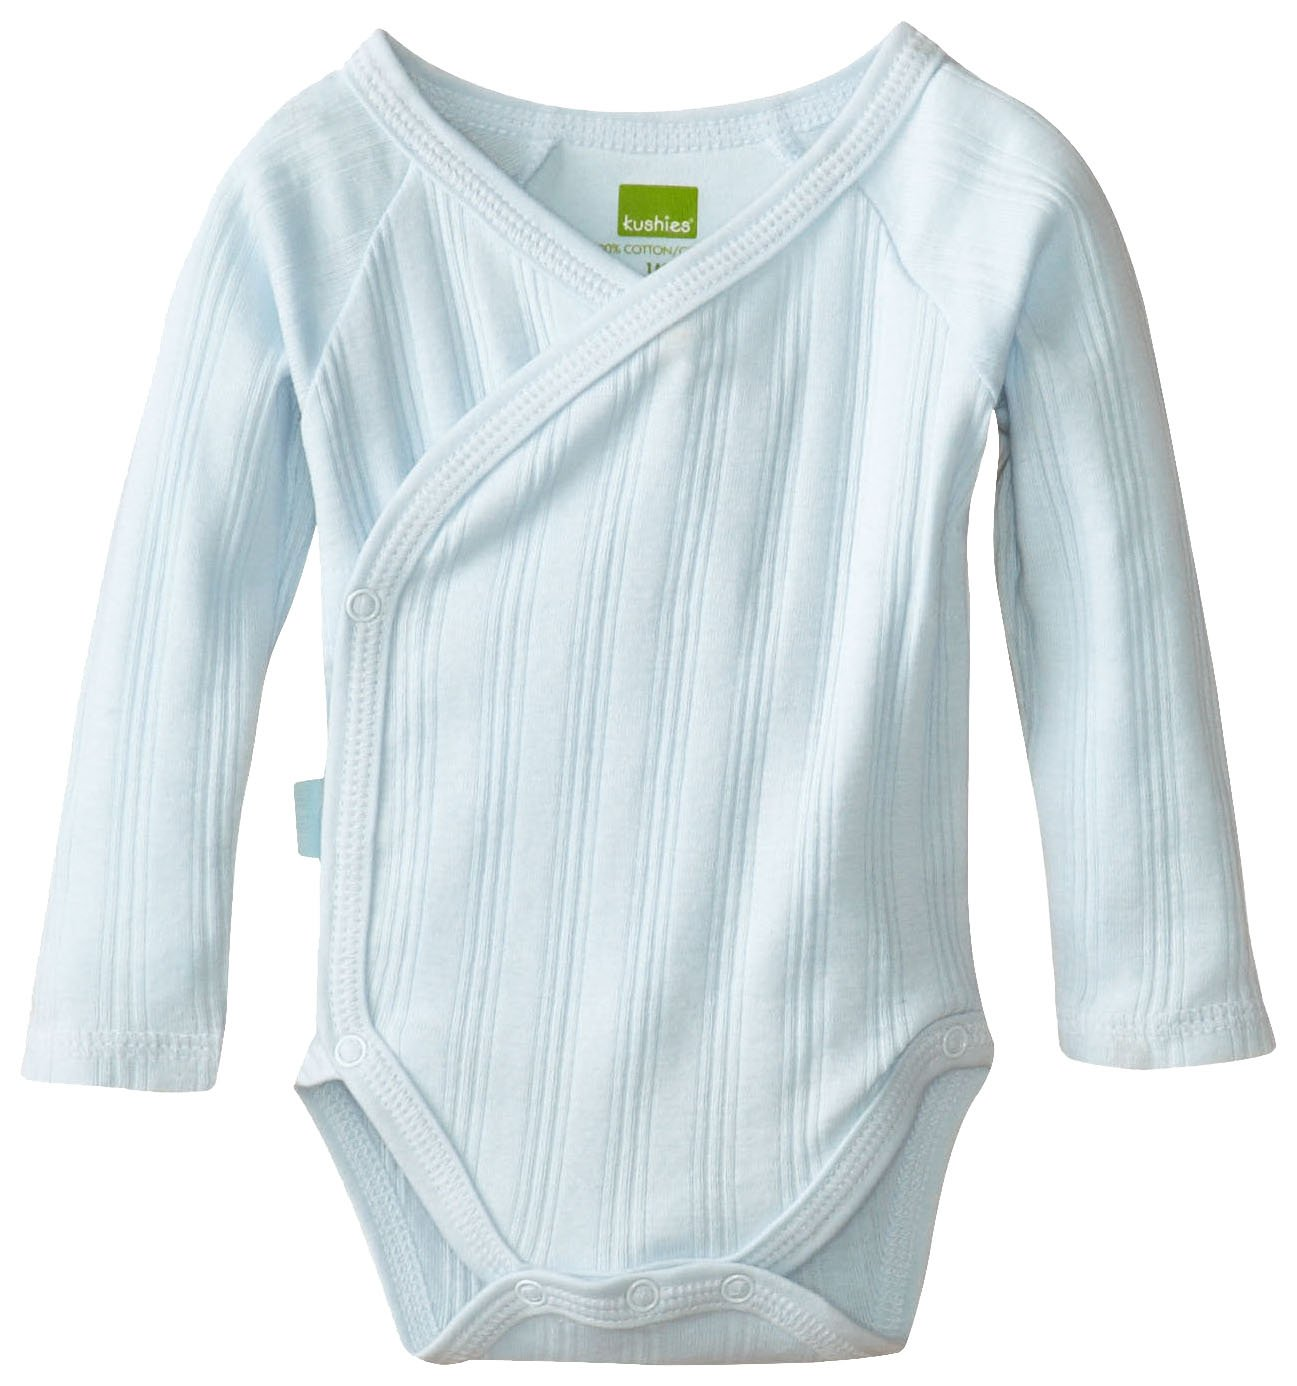 Kushies Baby Everyday Layette Wrap Long Sleeve Bodysuit (Rib), Blue, 6 Months, 1 Pack A468-Blue-6 Months